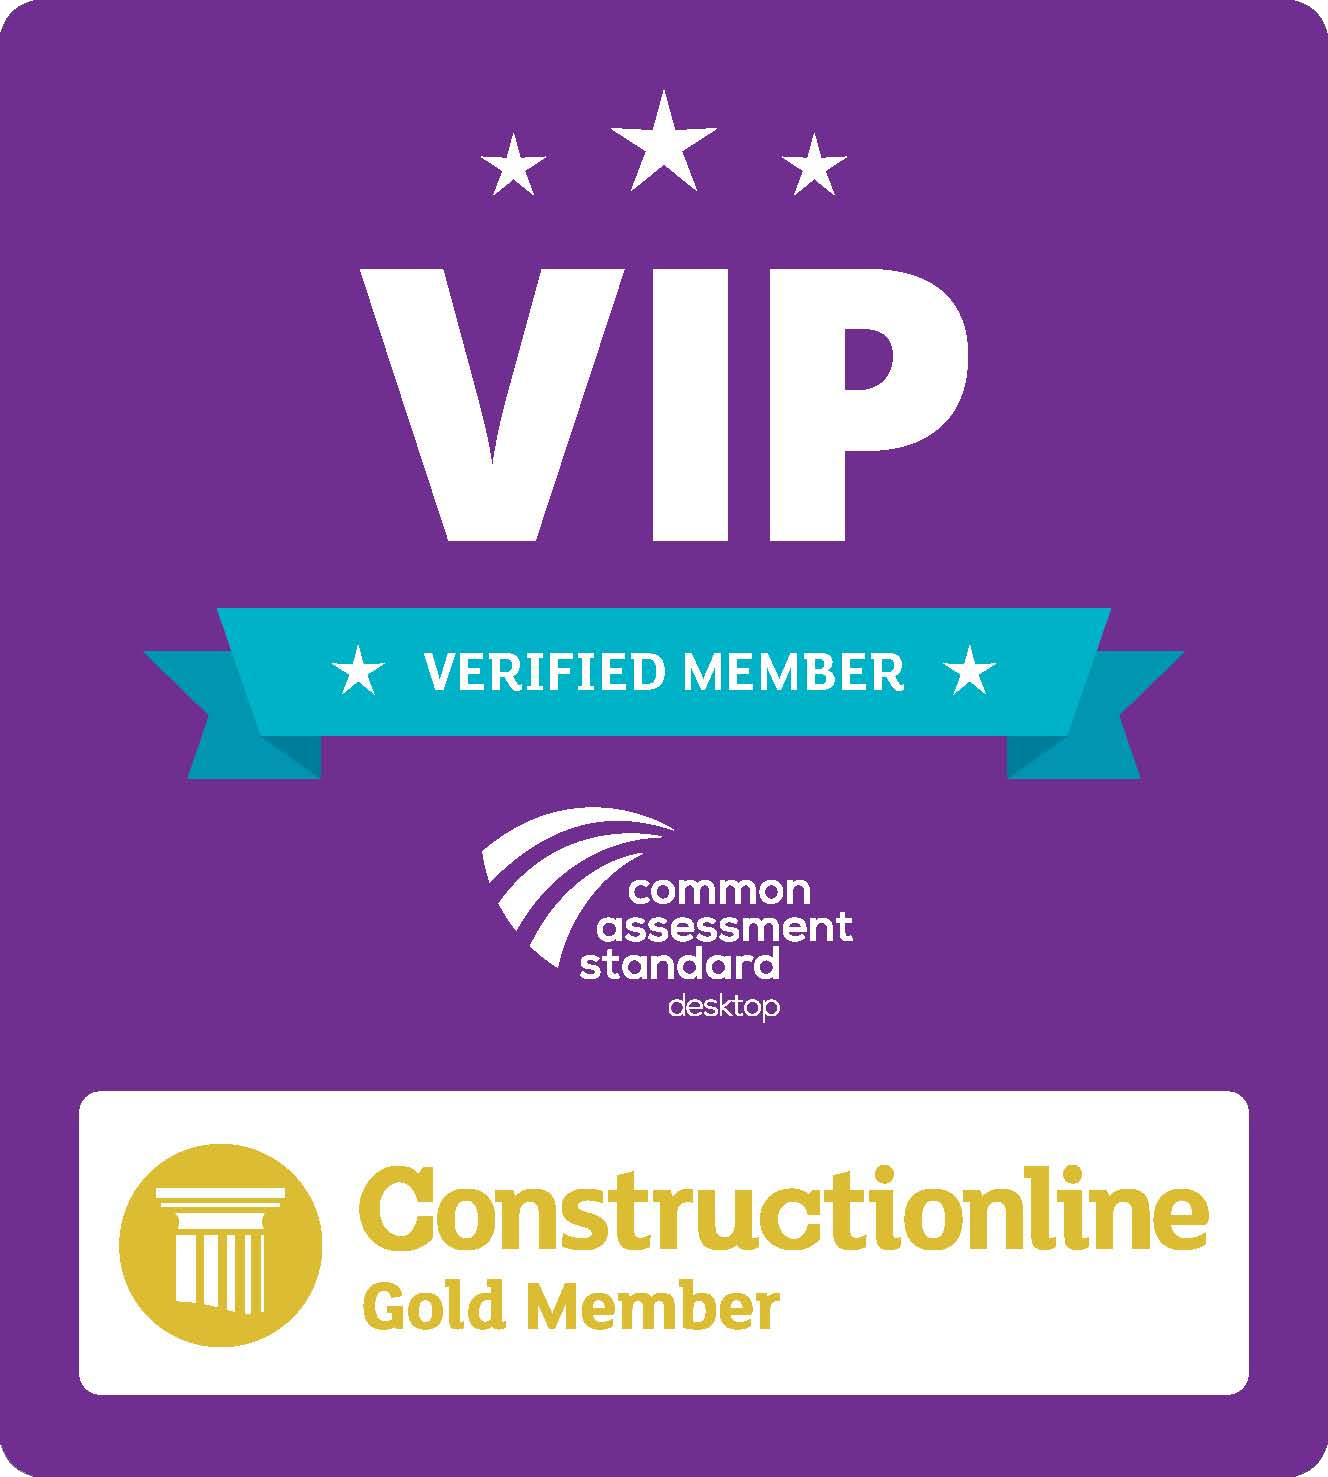 Construction Line VIP Gold Member